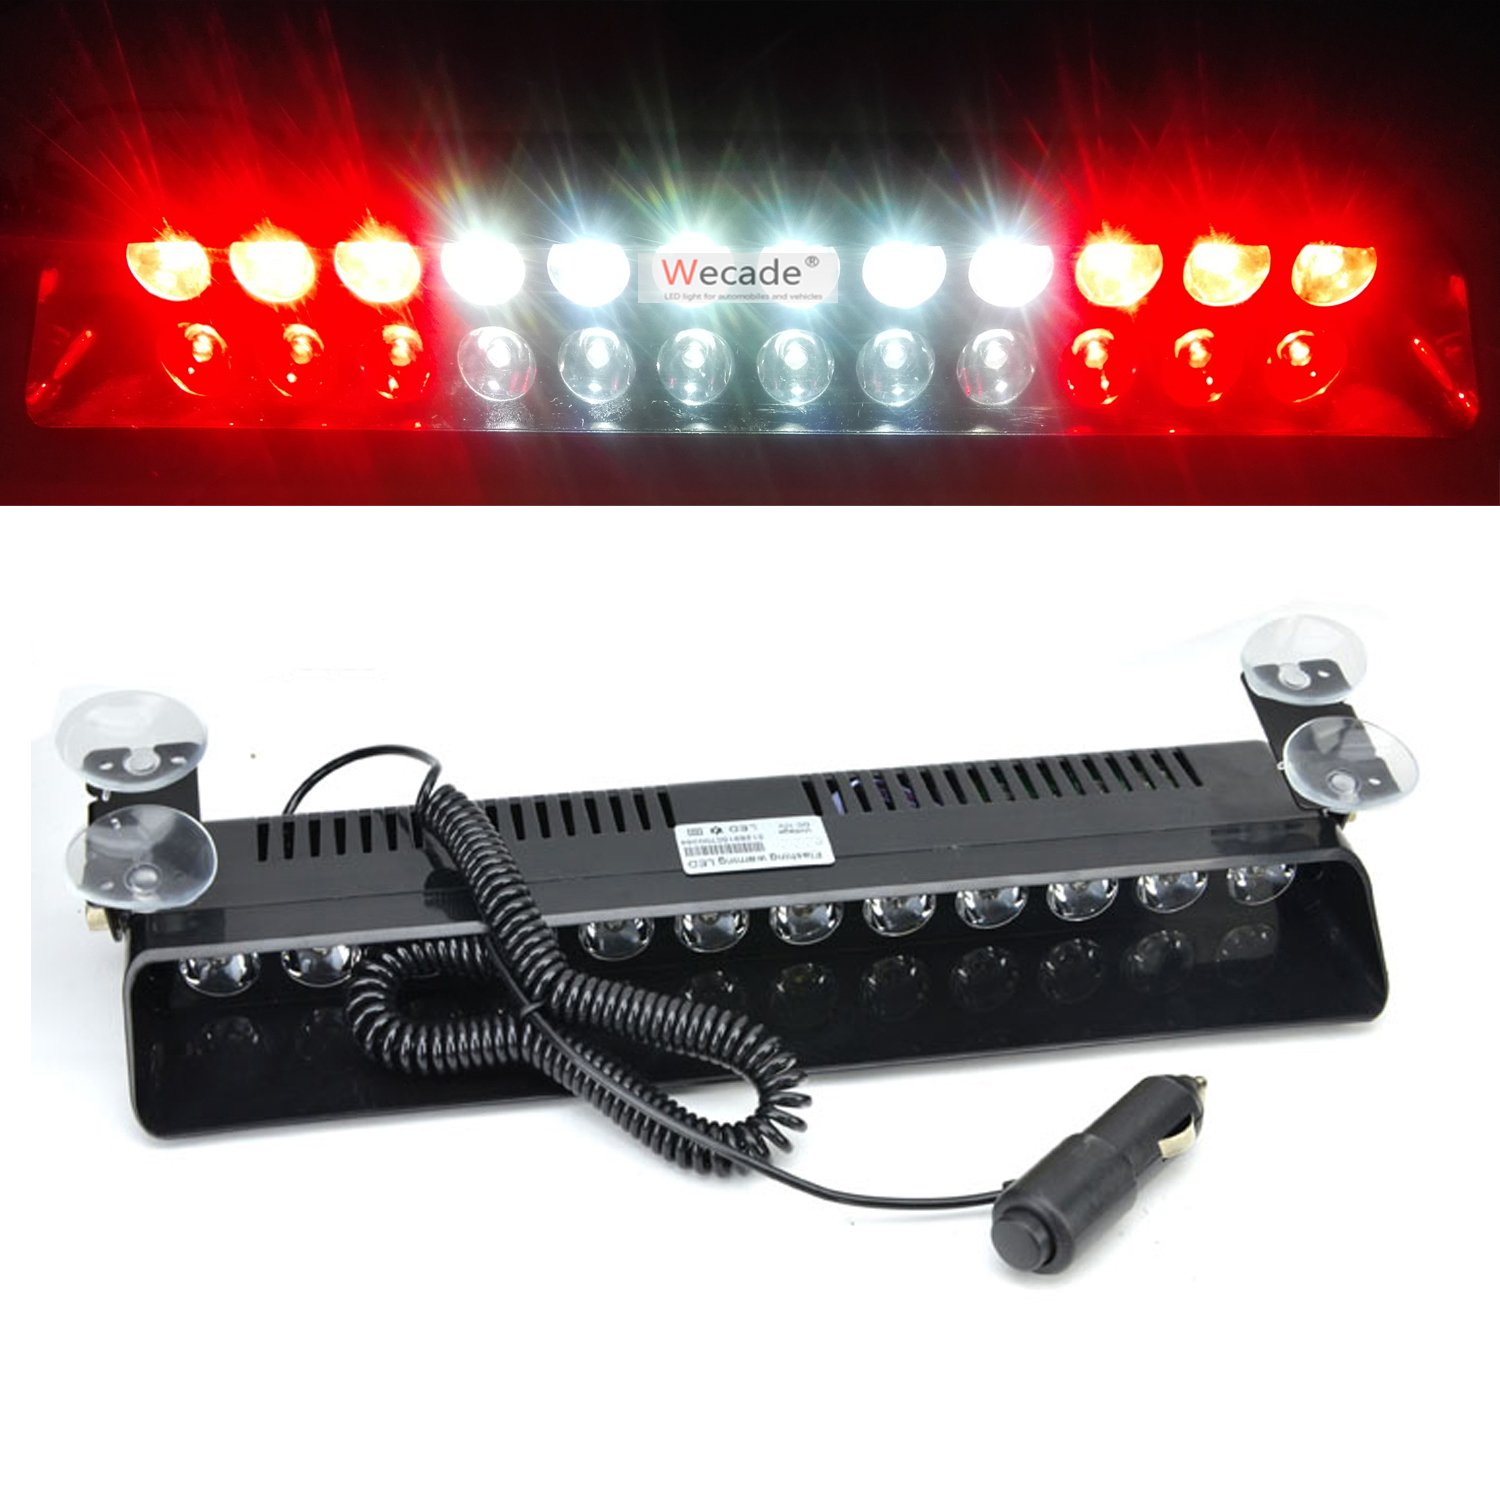 71BI2q4mpLL._SL1500_ amazon com warning lights warning & emergency lights automotive  at crackthecode.co